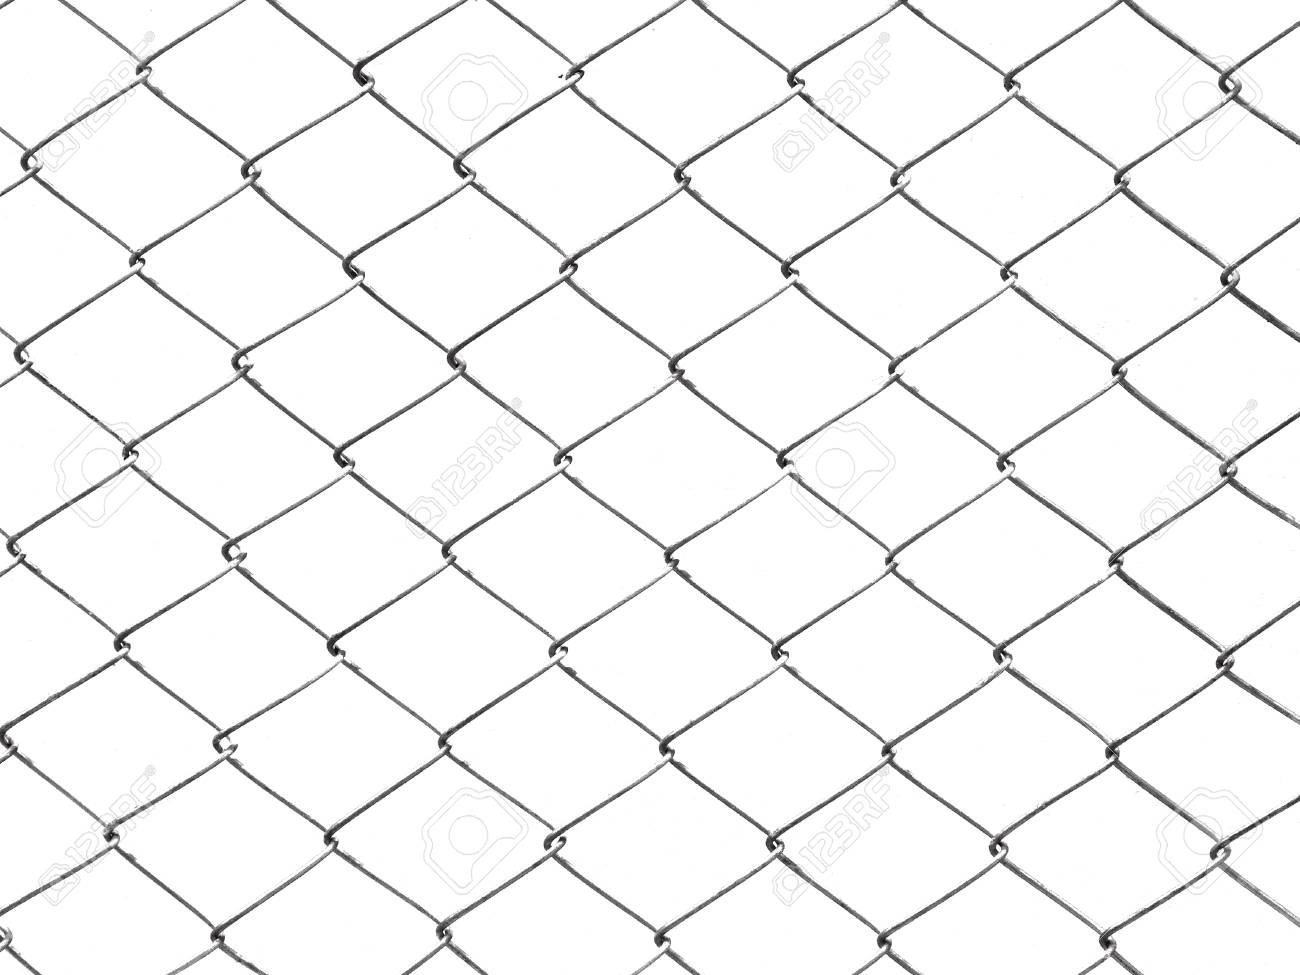 Colorful Paige Wire Fence Images - Electrical Diagram Ideas - itseo.info